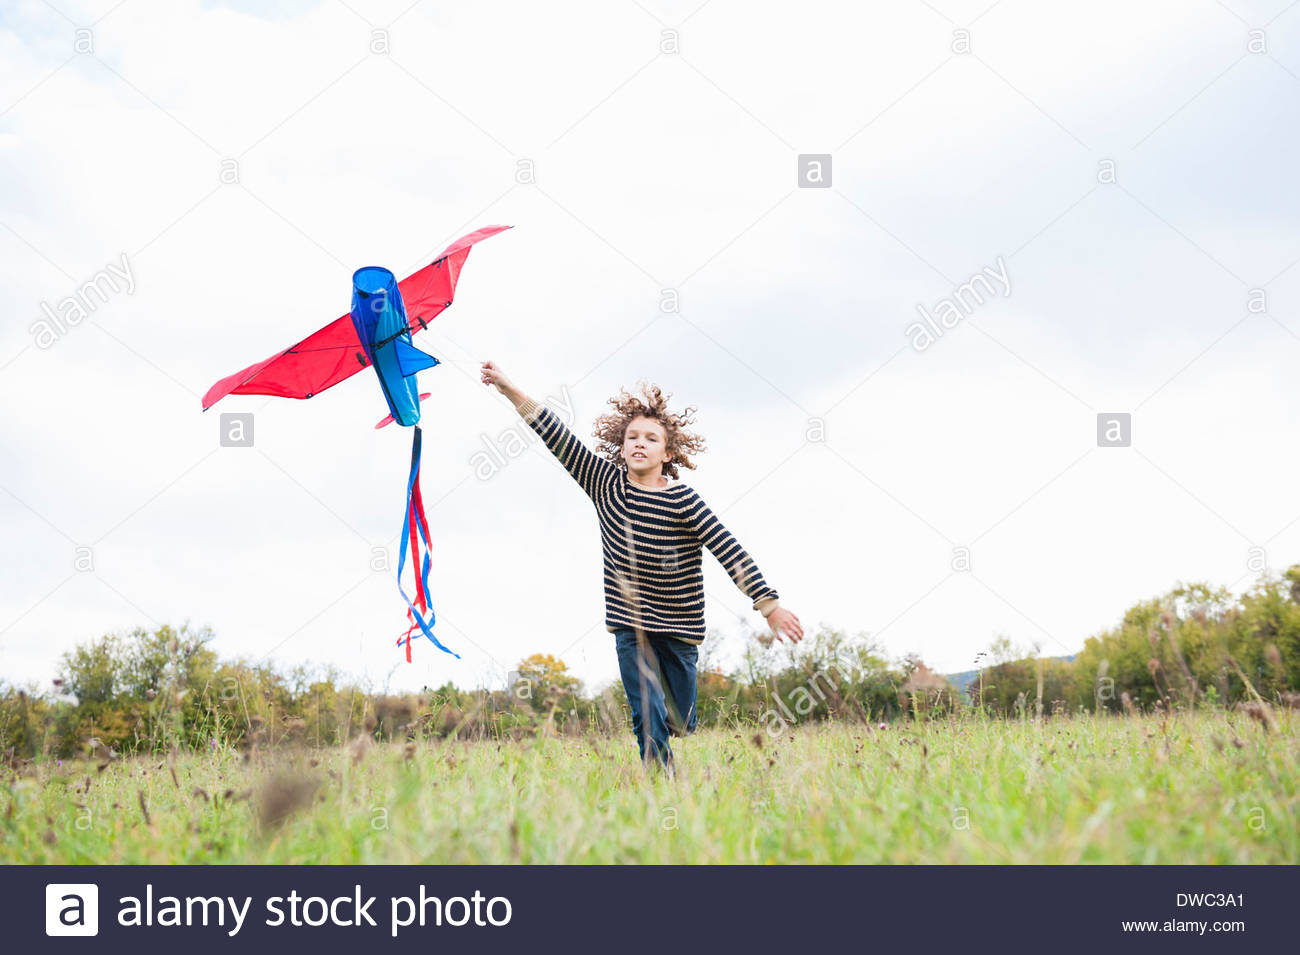 Boy flying kite - Stock Image